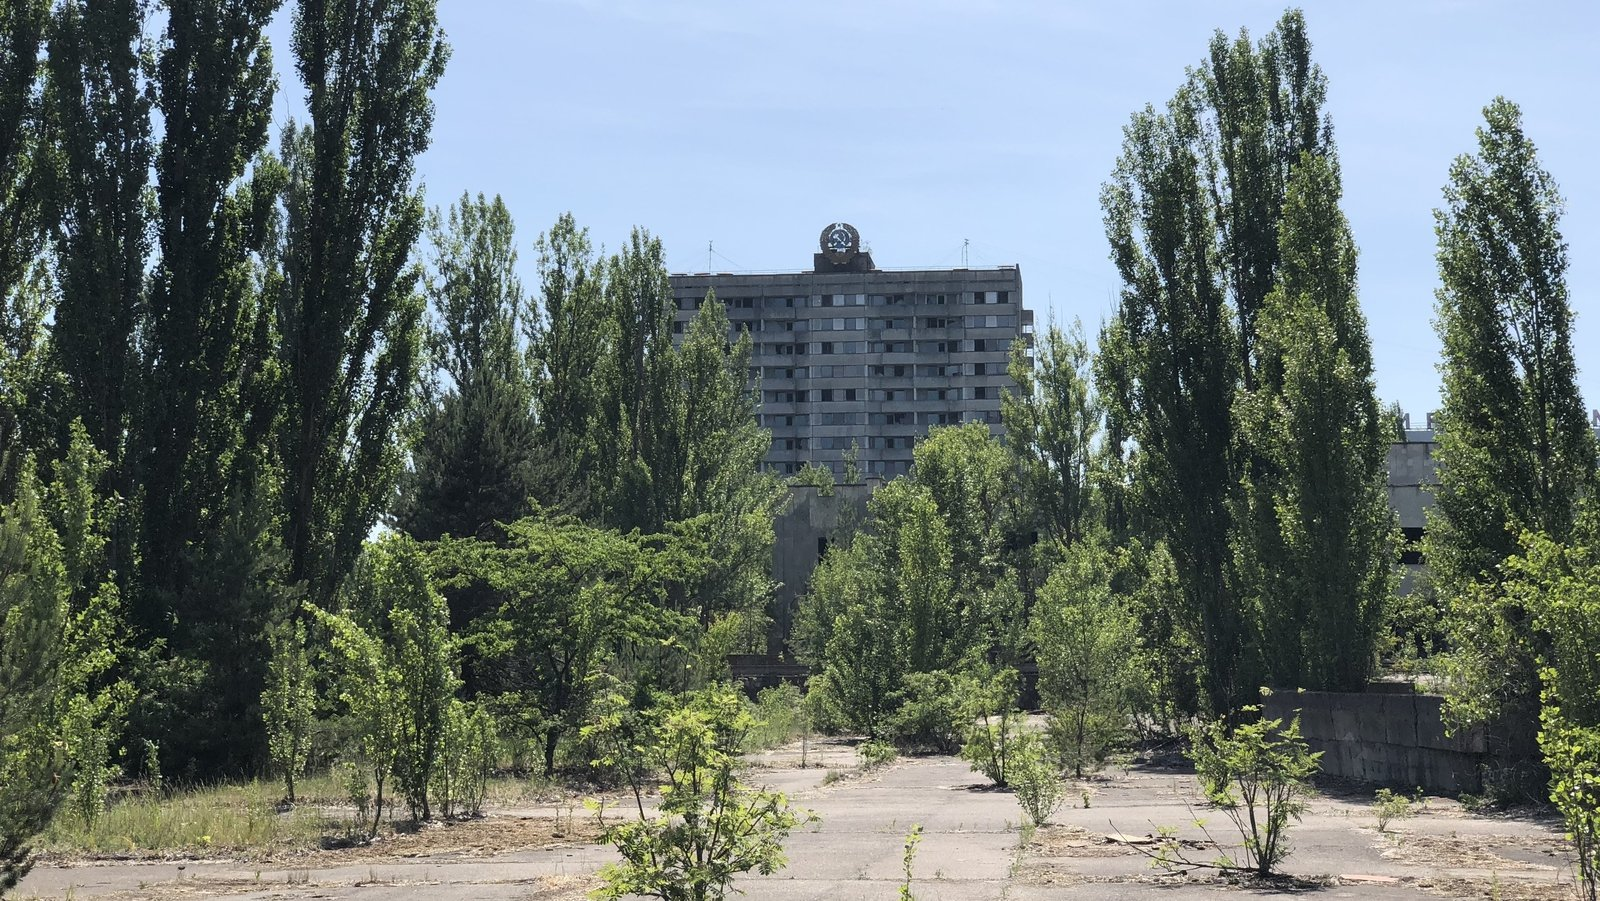 Image - The now overgrown central square of the abandoned town of Pripyat